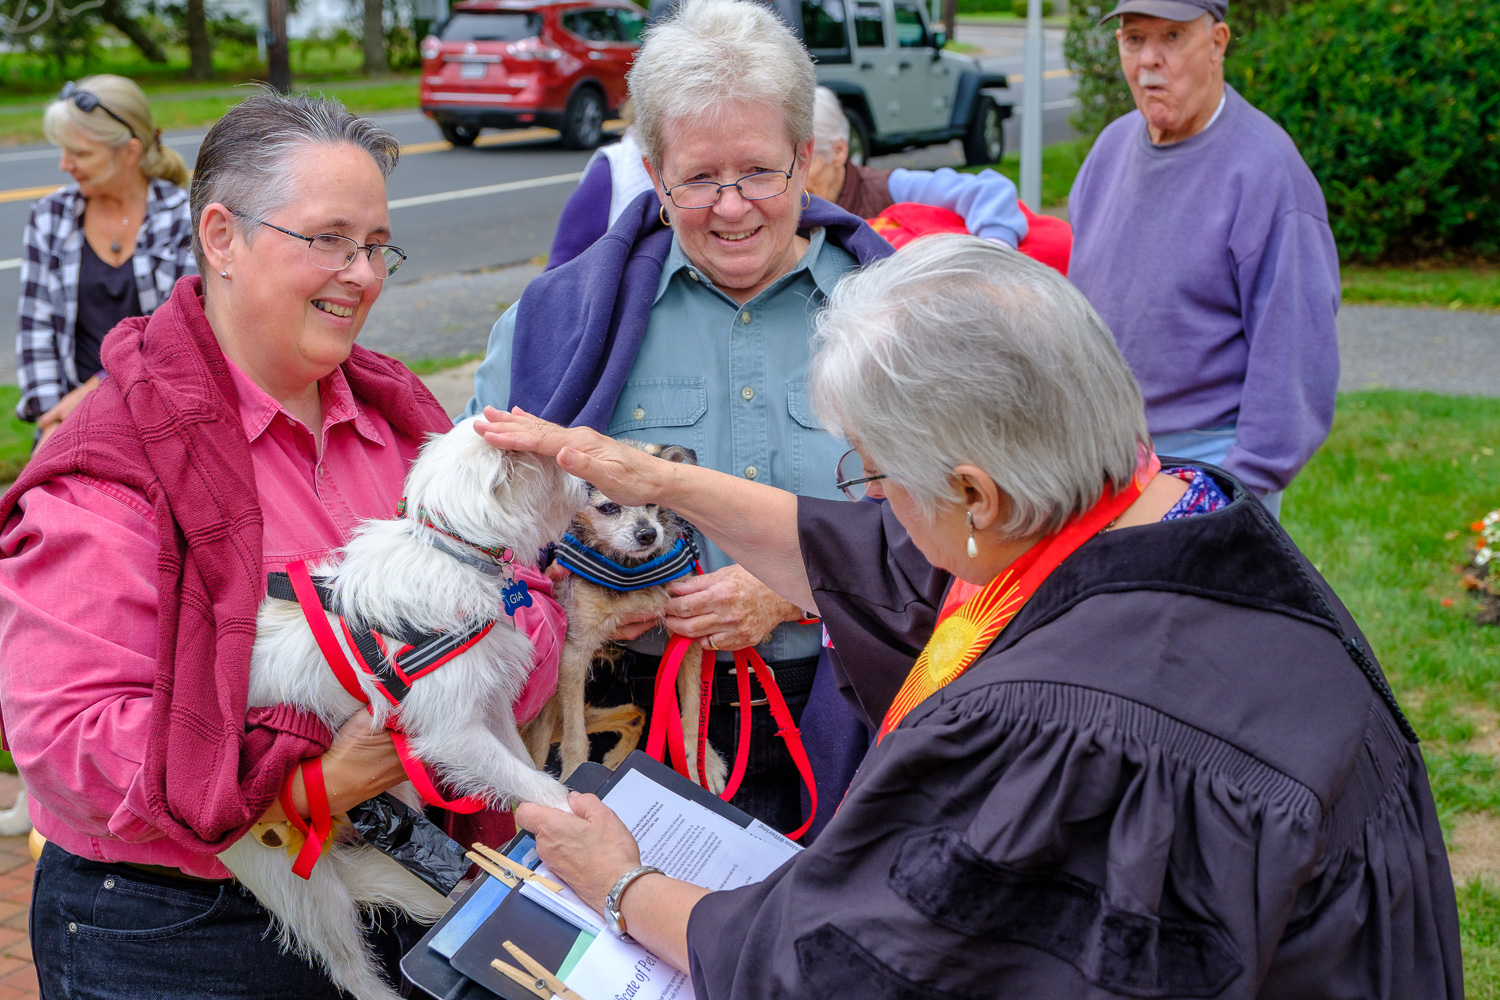 Taco, the Chihuahua, and Gia, a rescued Terrier, with owners Diane Johnson and Carolyn Peabody of Orient. (Credit: Jeremy Garretson)